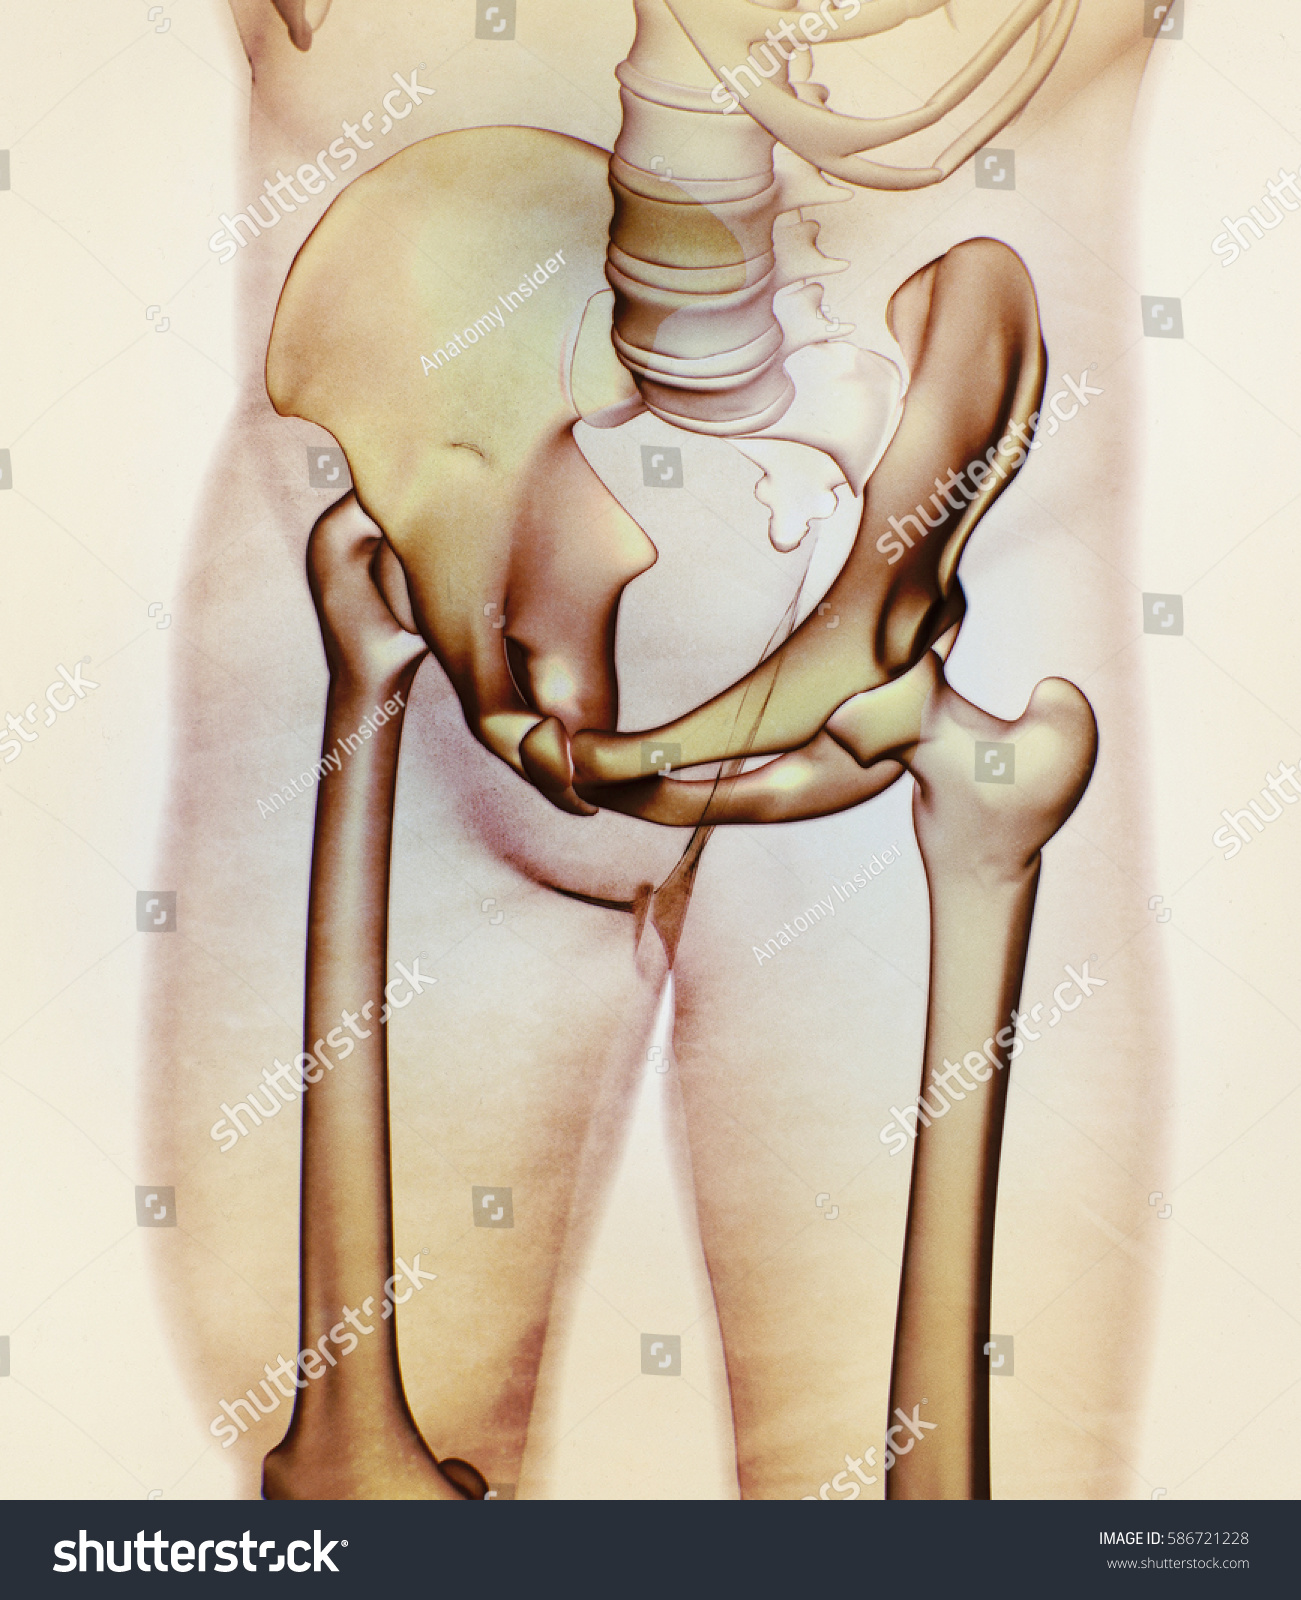 Ilium Bone Hip Bone Pelvis Human Stock Illustration 586721228 ...